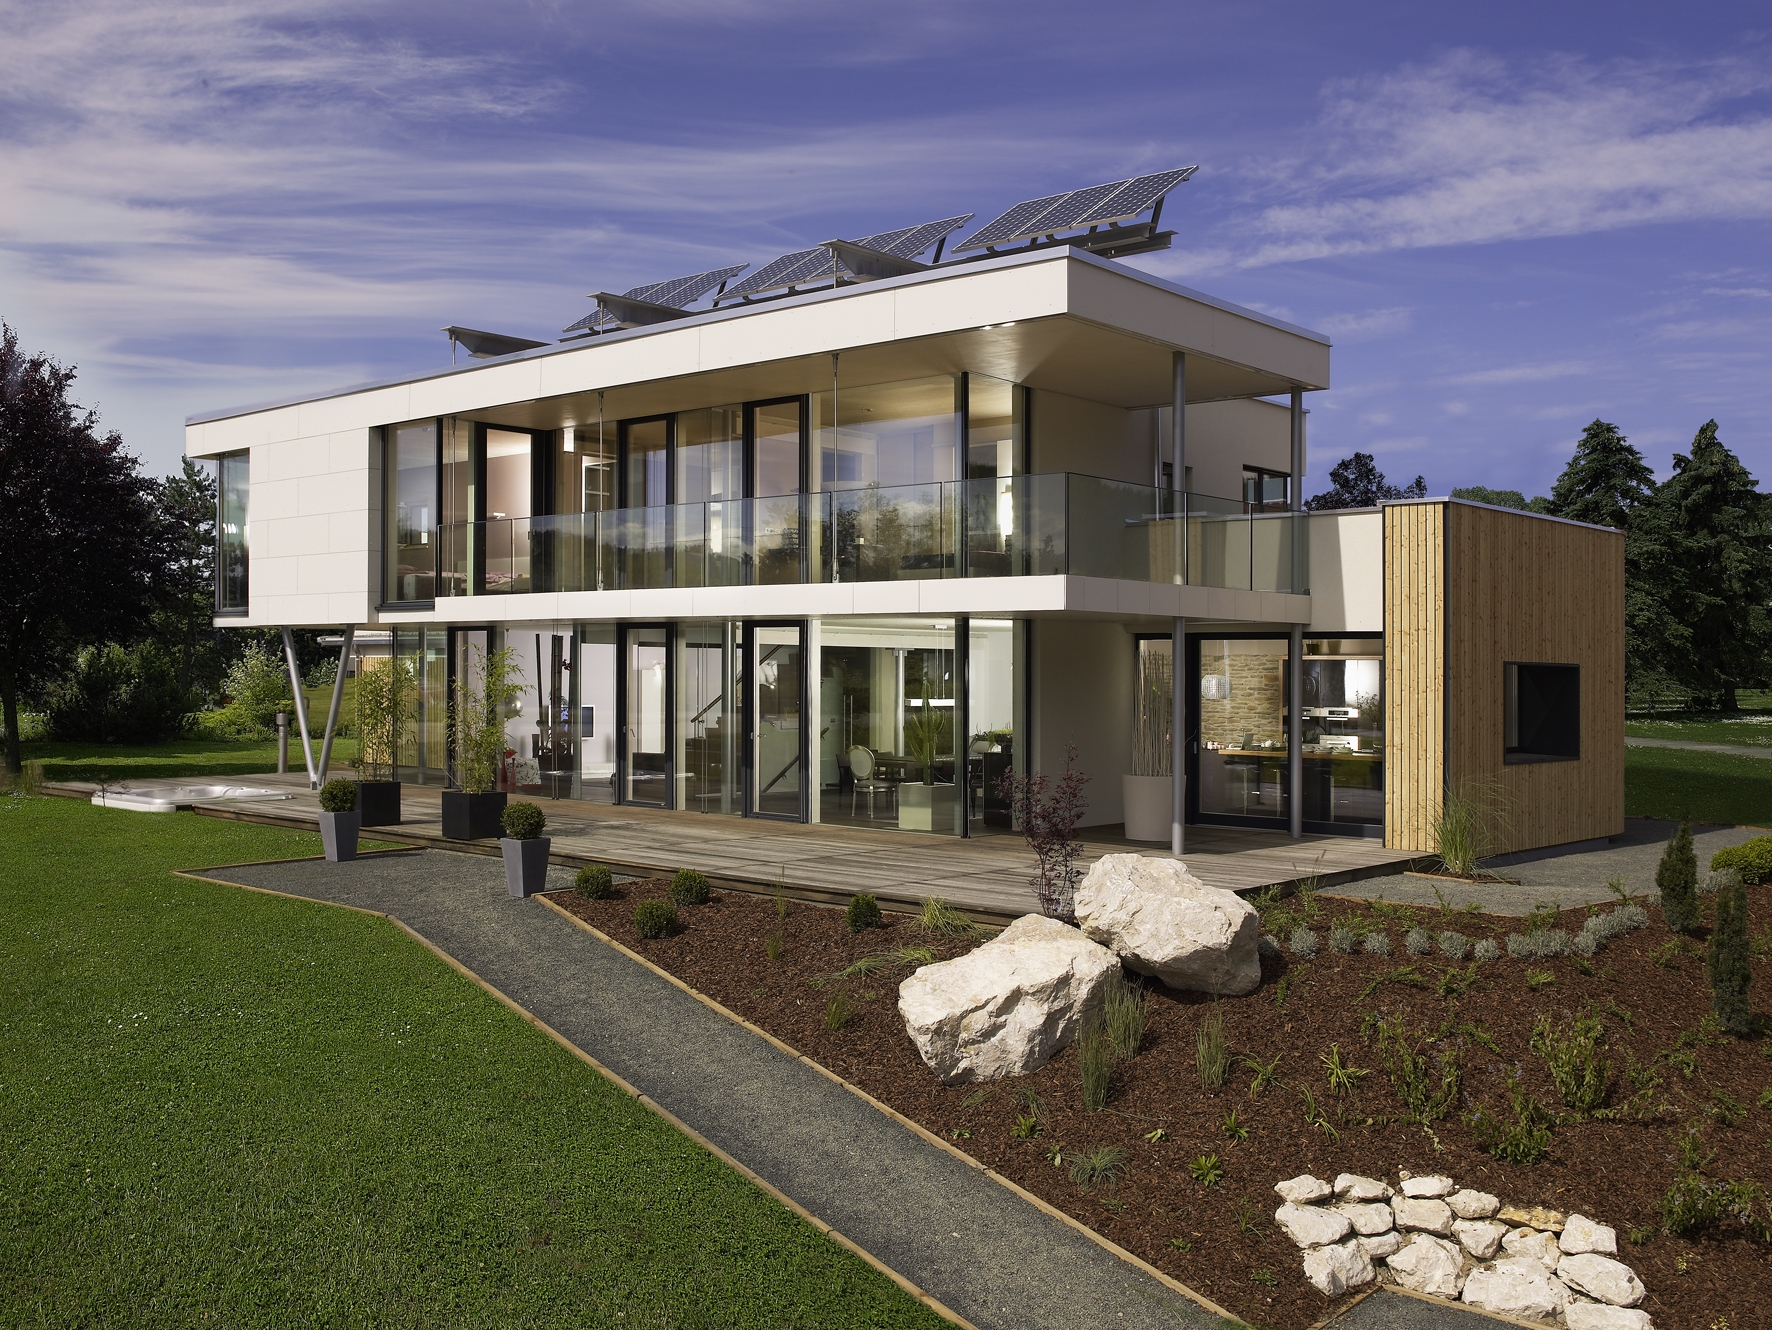 Example of a Passive House